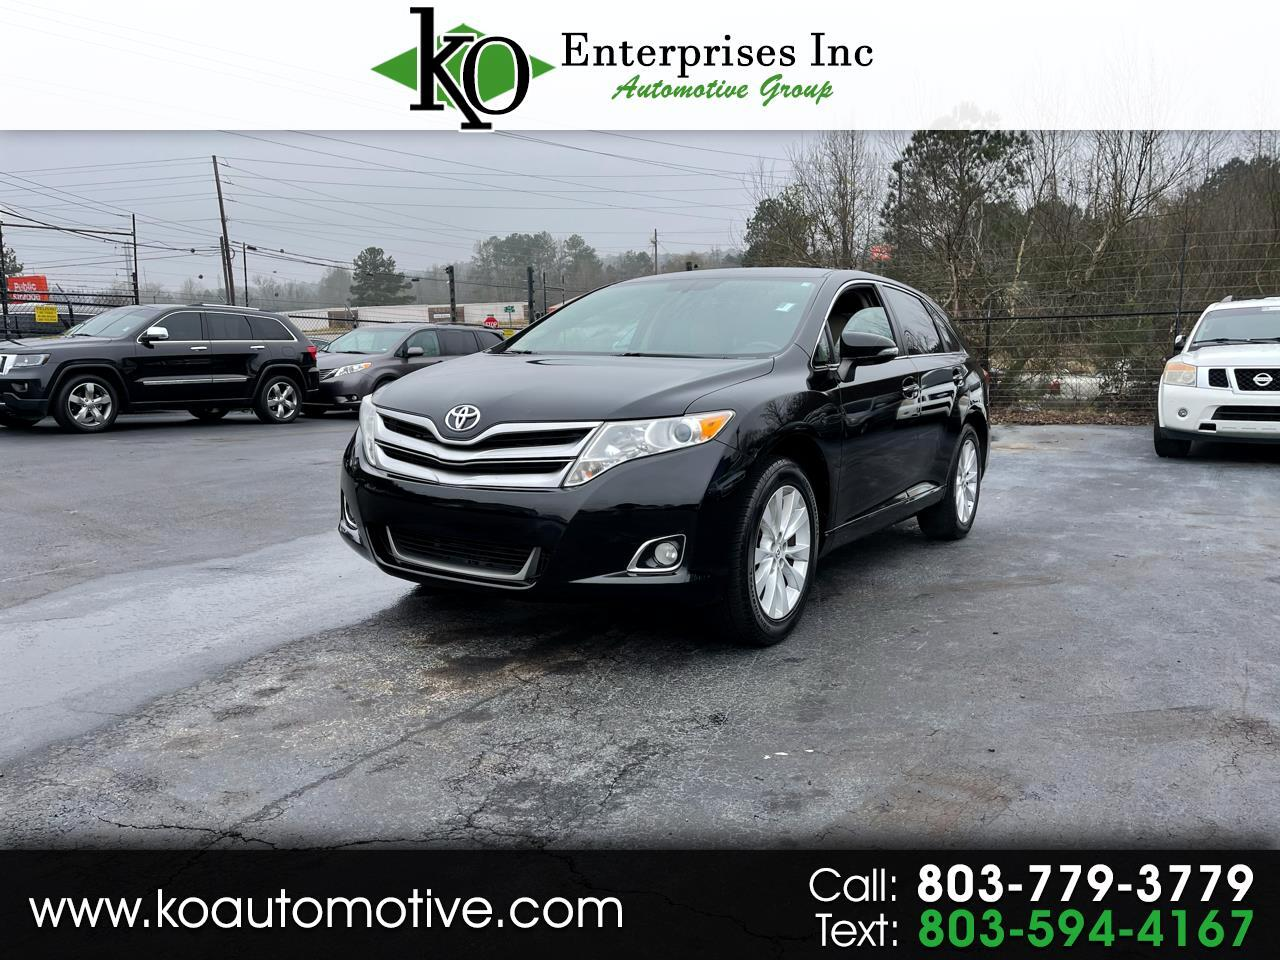 Toyota Venza 4dr Wgn I4 FWD XLE (Natl) 2014